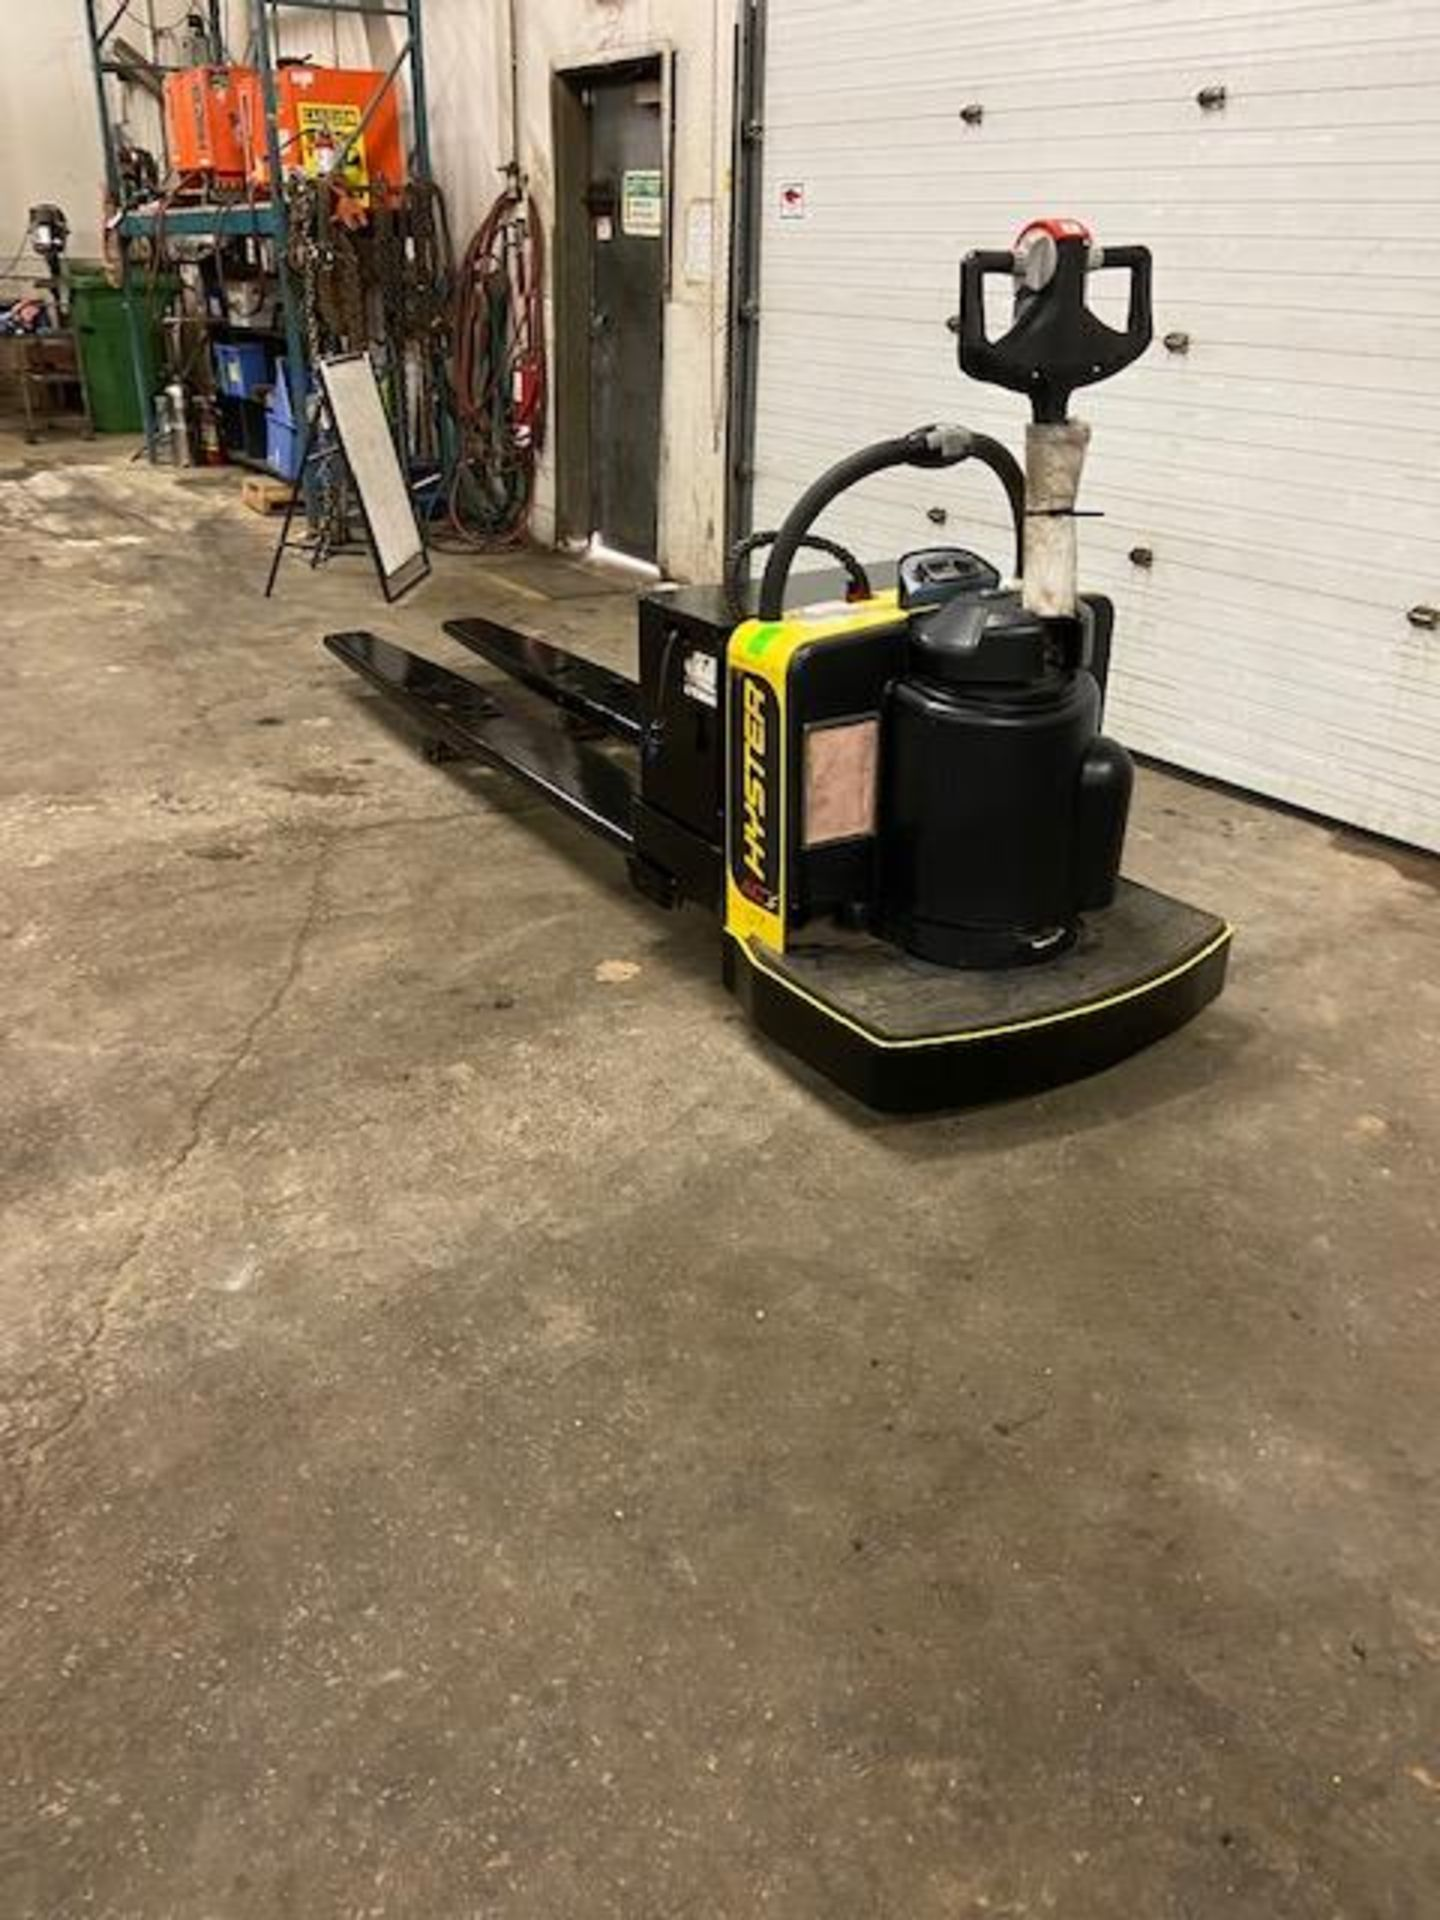 2019 Hyster Electric Ride on Powered Pallet Cart Lift 8000lbs capacity 8' Long with VERY LOW HOURS - Image 4 of 4